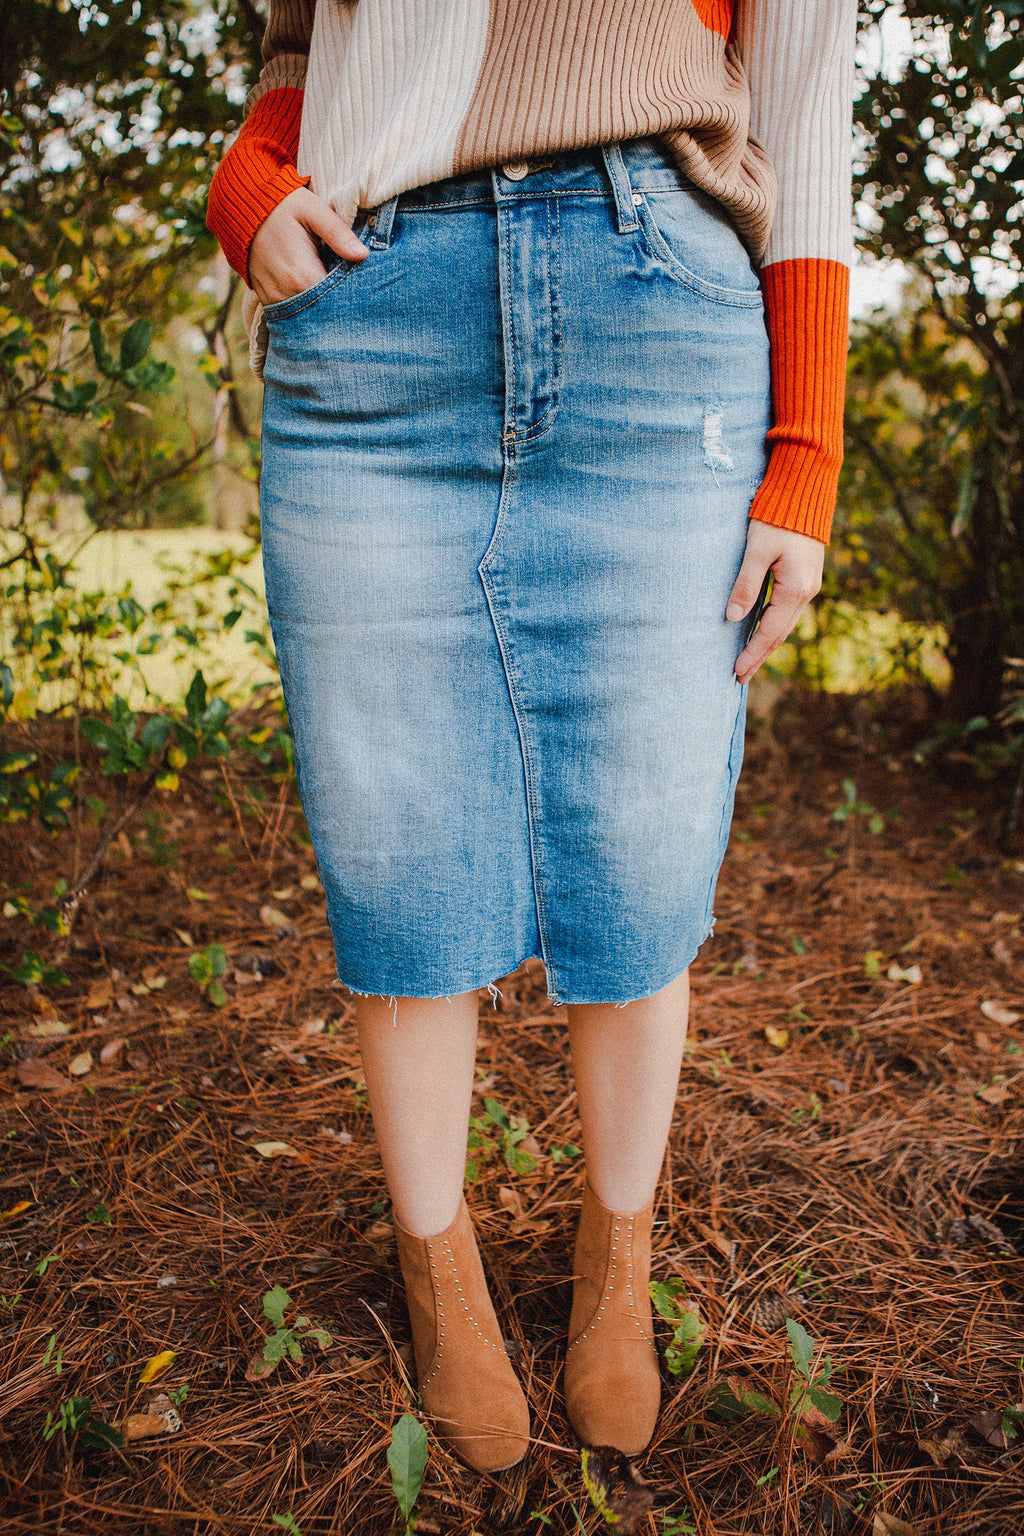 Lawrence Asymmetrical Denim Skirt